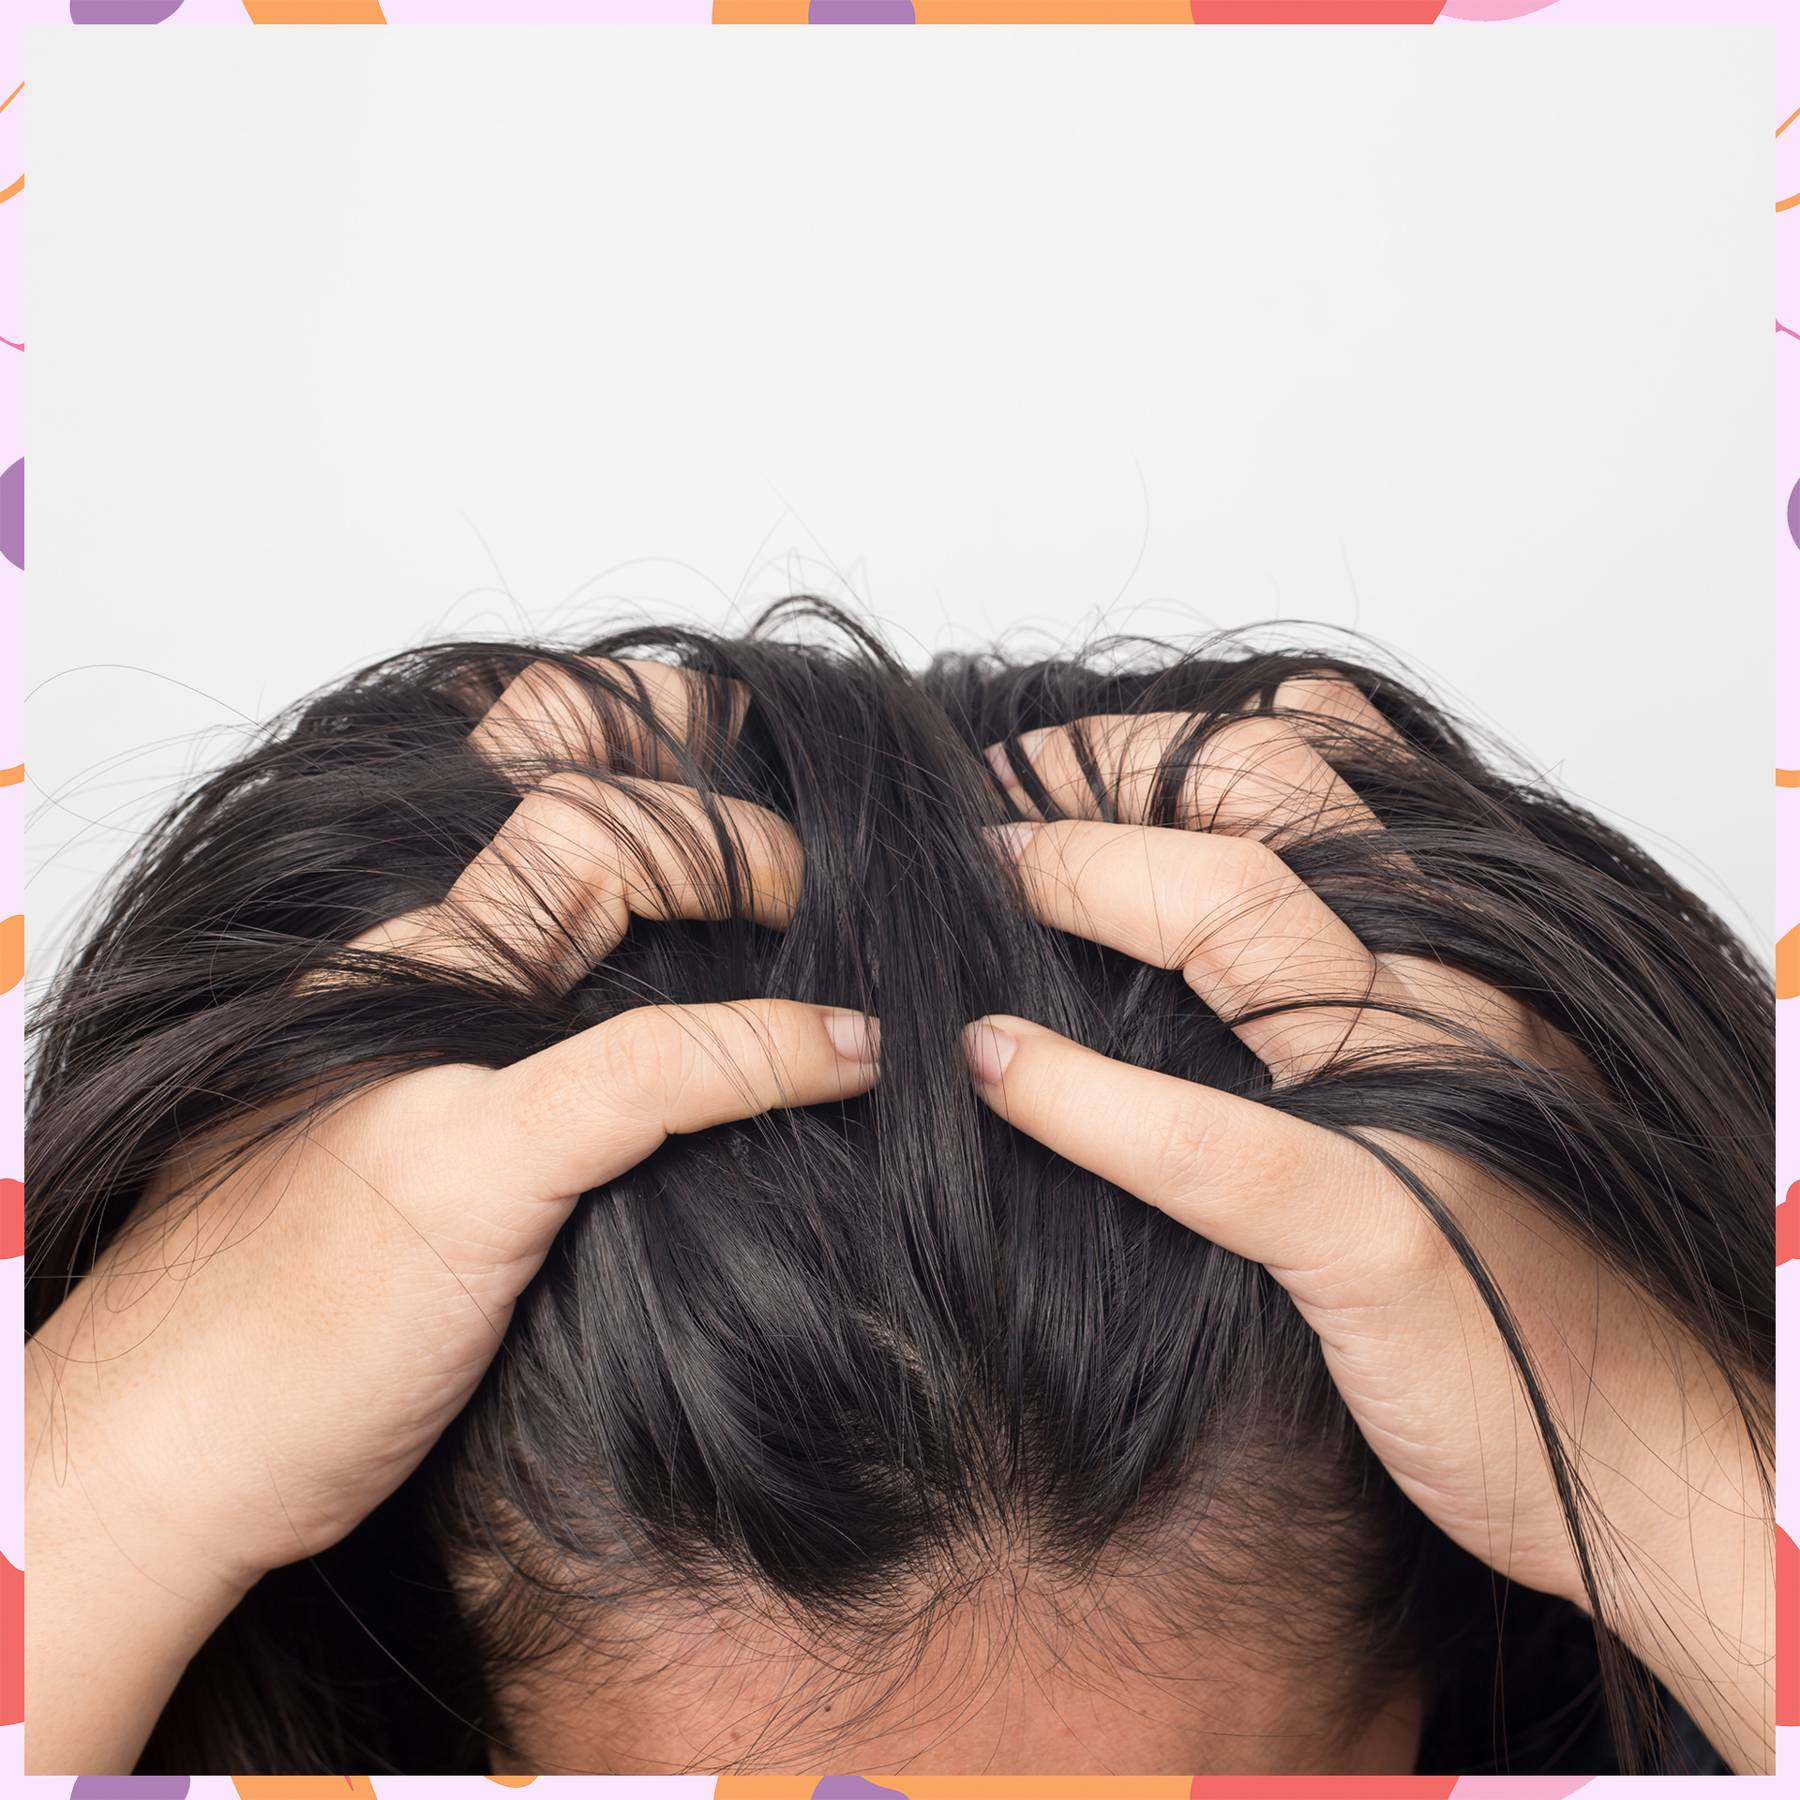 Why does my hair hurt? We take a look at the reasons behind tender scalps